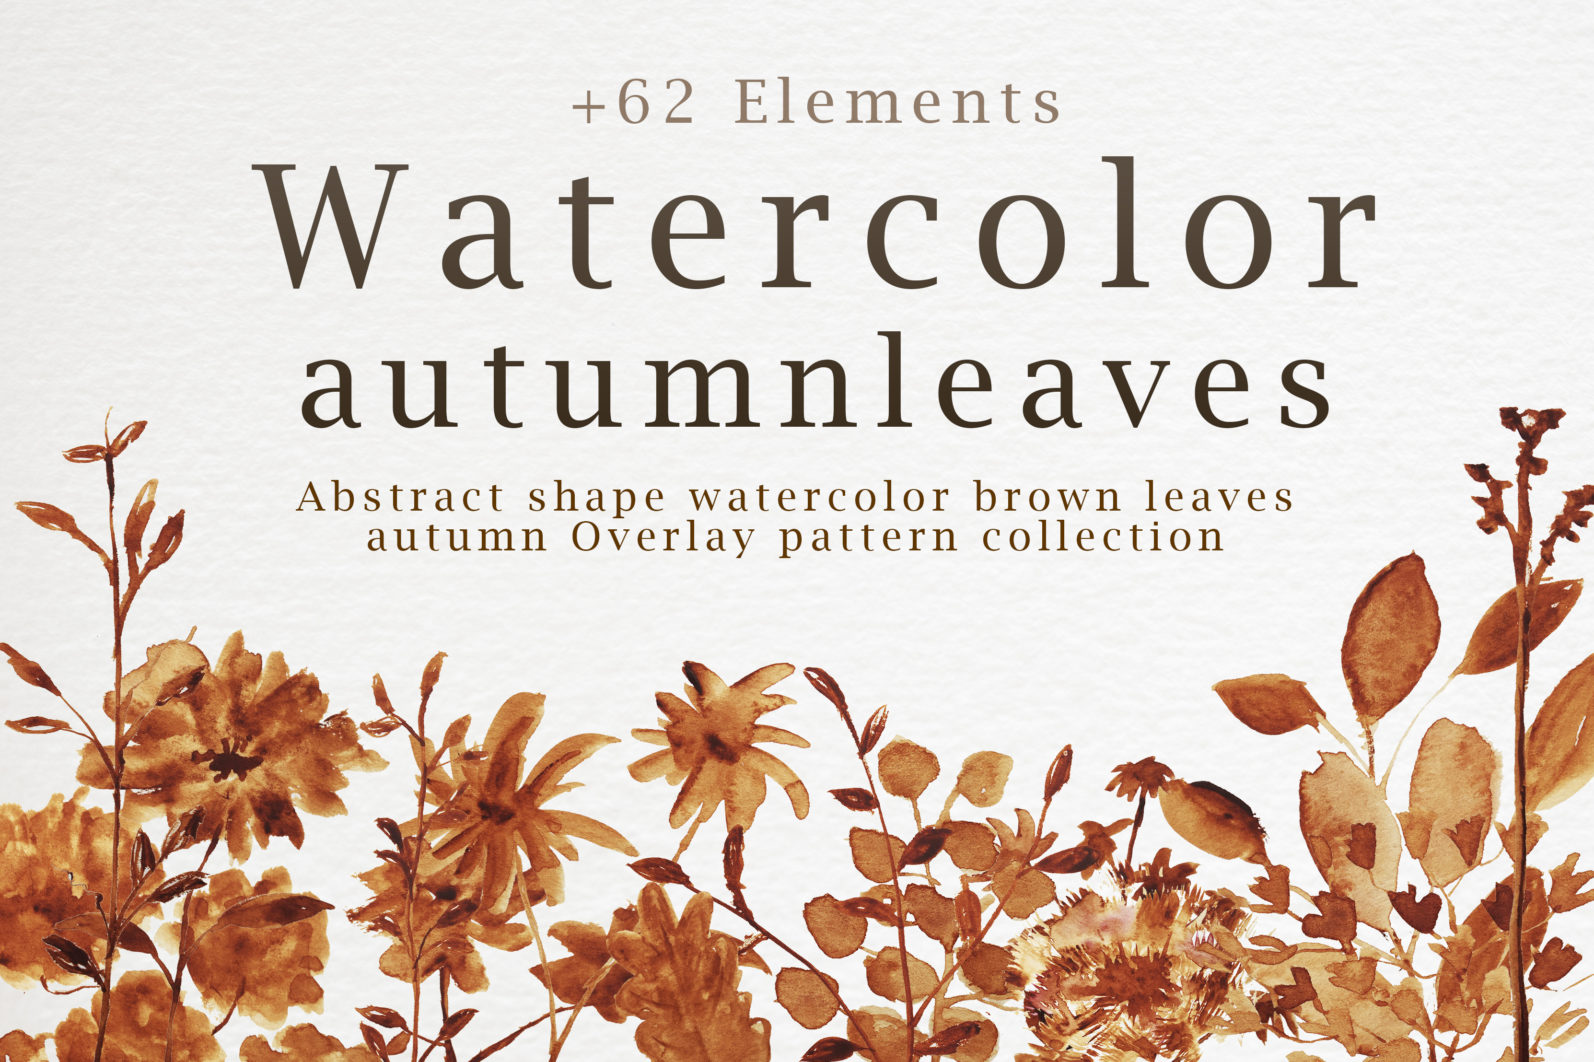 Abstract shape watercolor brown leaves autumn - %E0%B8%AB%E0%B8%99%E0%B9%89%E0%B8%B2%E0%B8%9B%E0%B8%81 1 scaled -